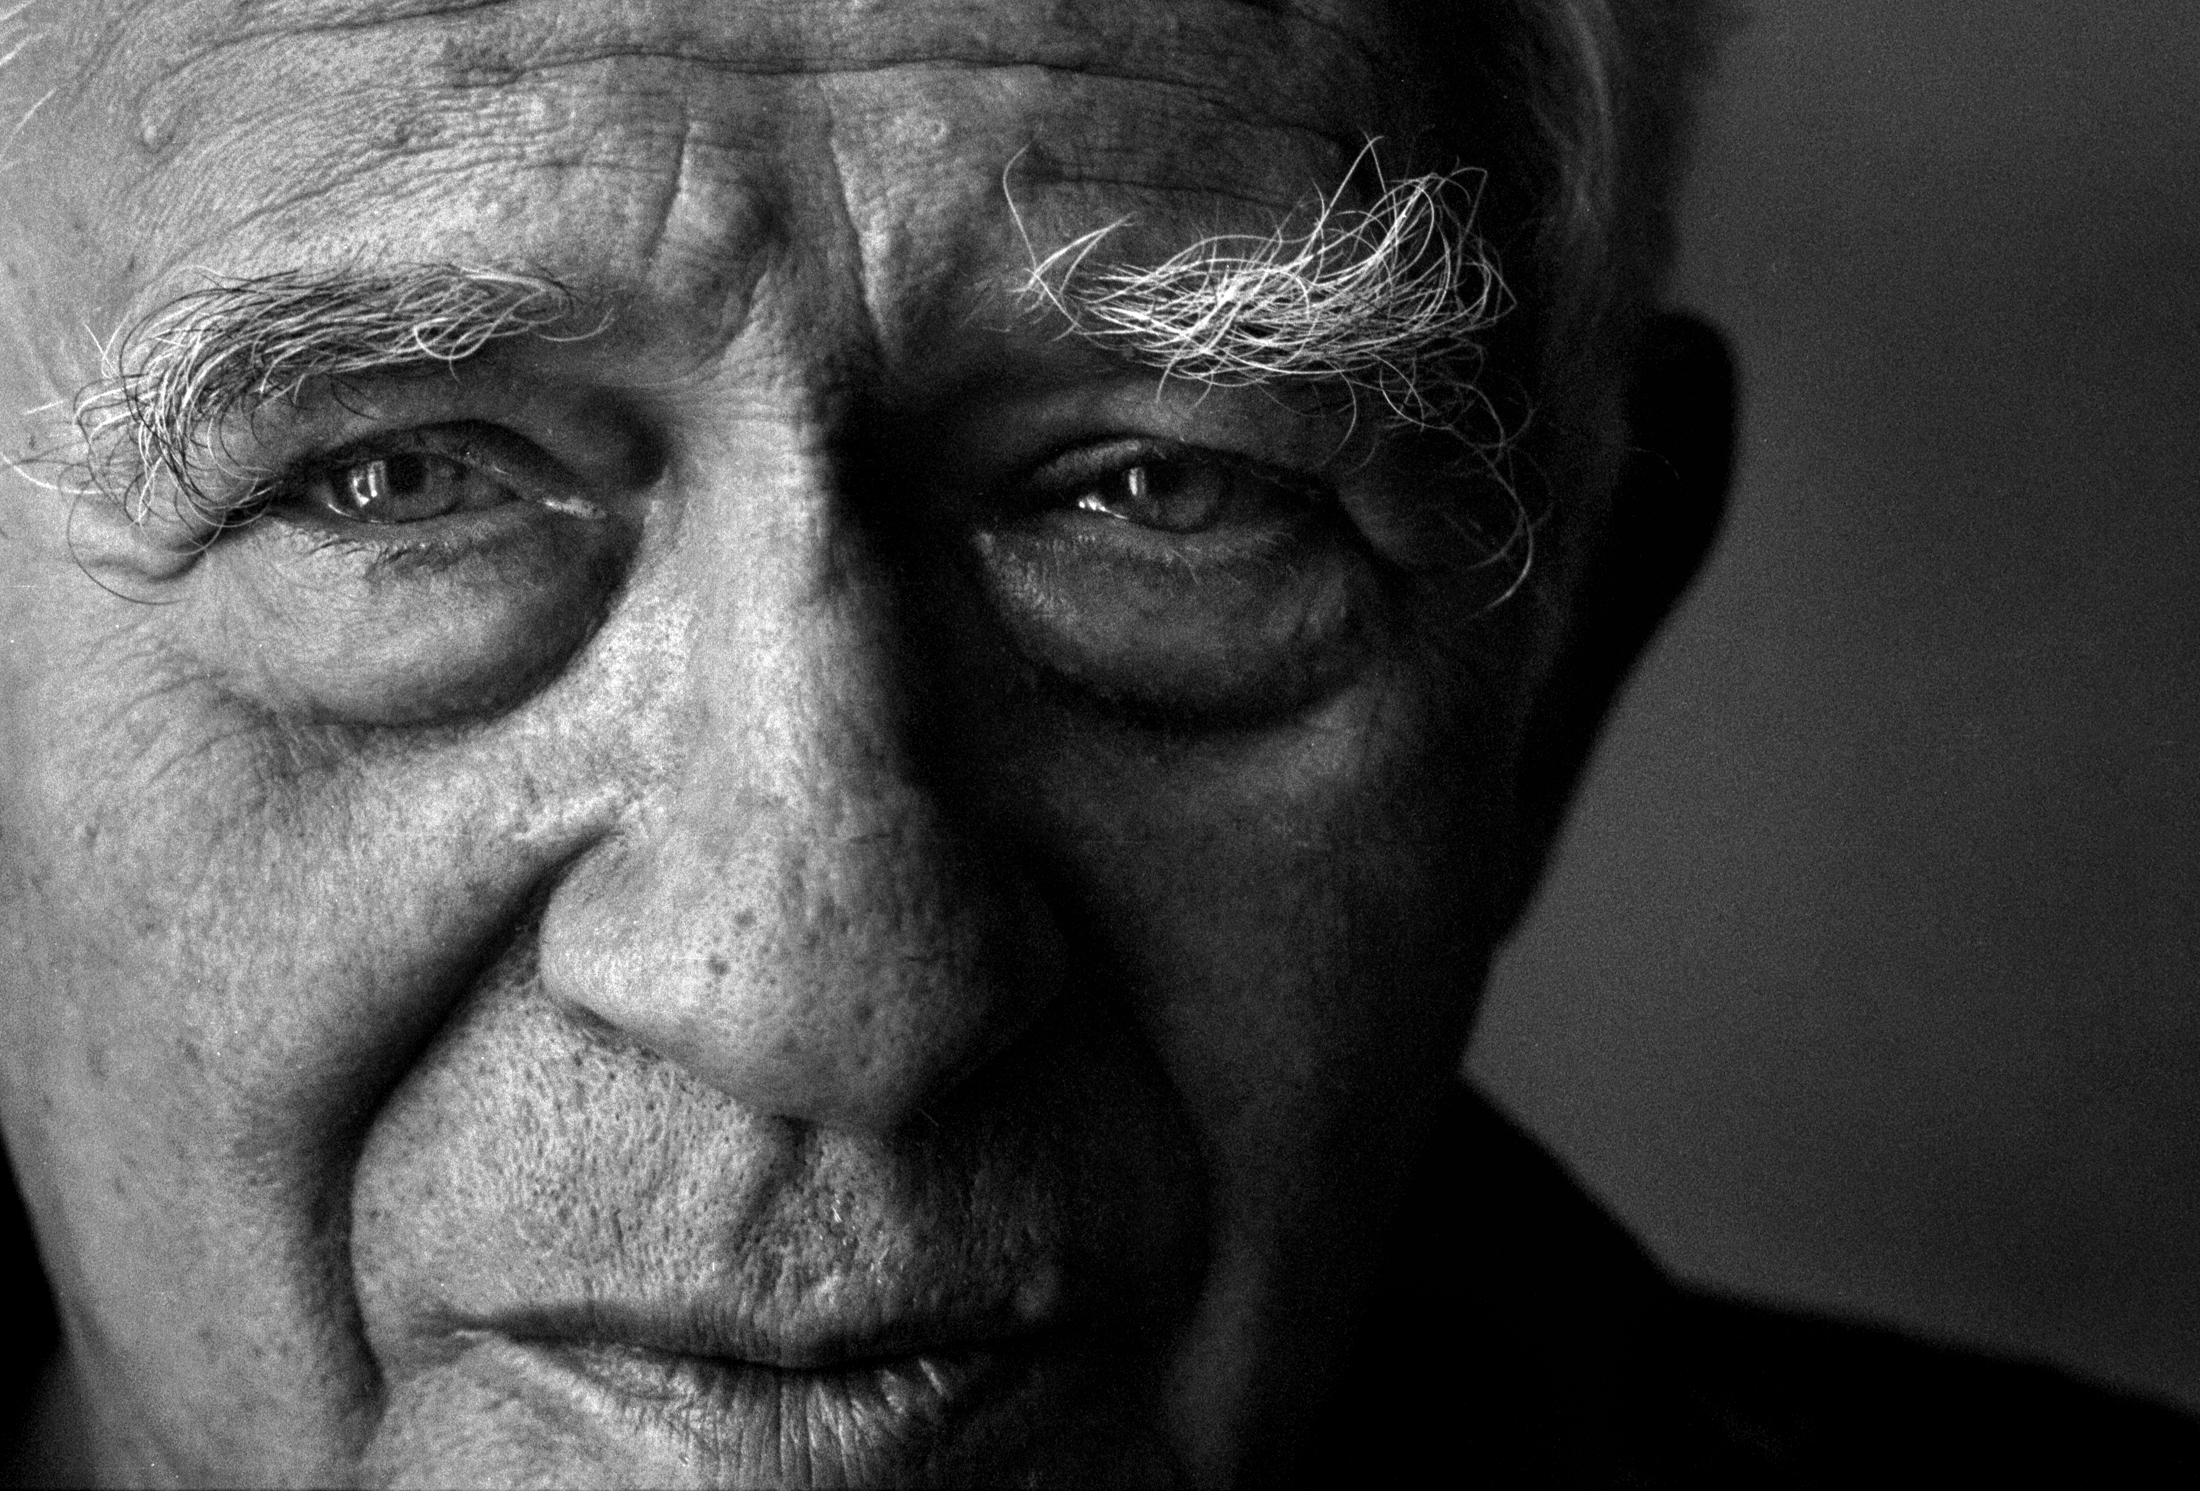 We often had to shoot quick portrait in hotel rooms of visiting authors on book tours. This is simply window light and incredible eyebrows on Norman Mailer's face.© Nancy Andrews/The Washington Post